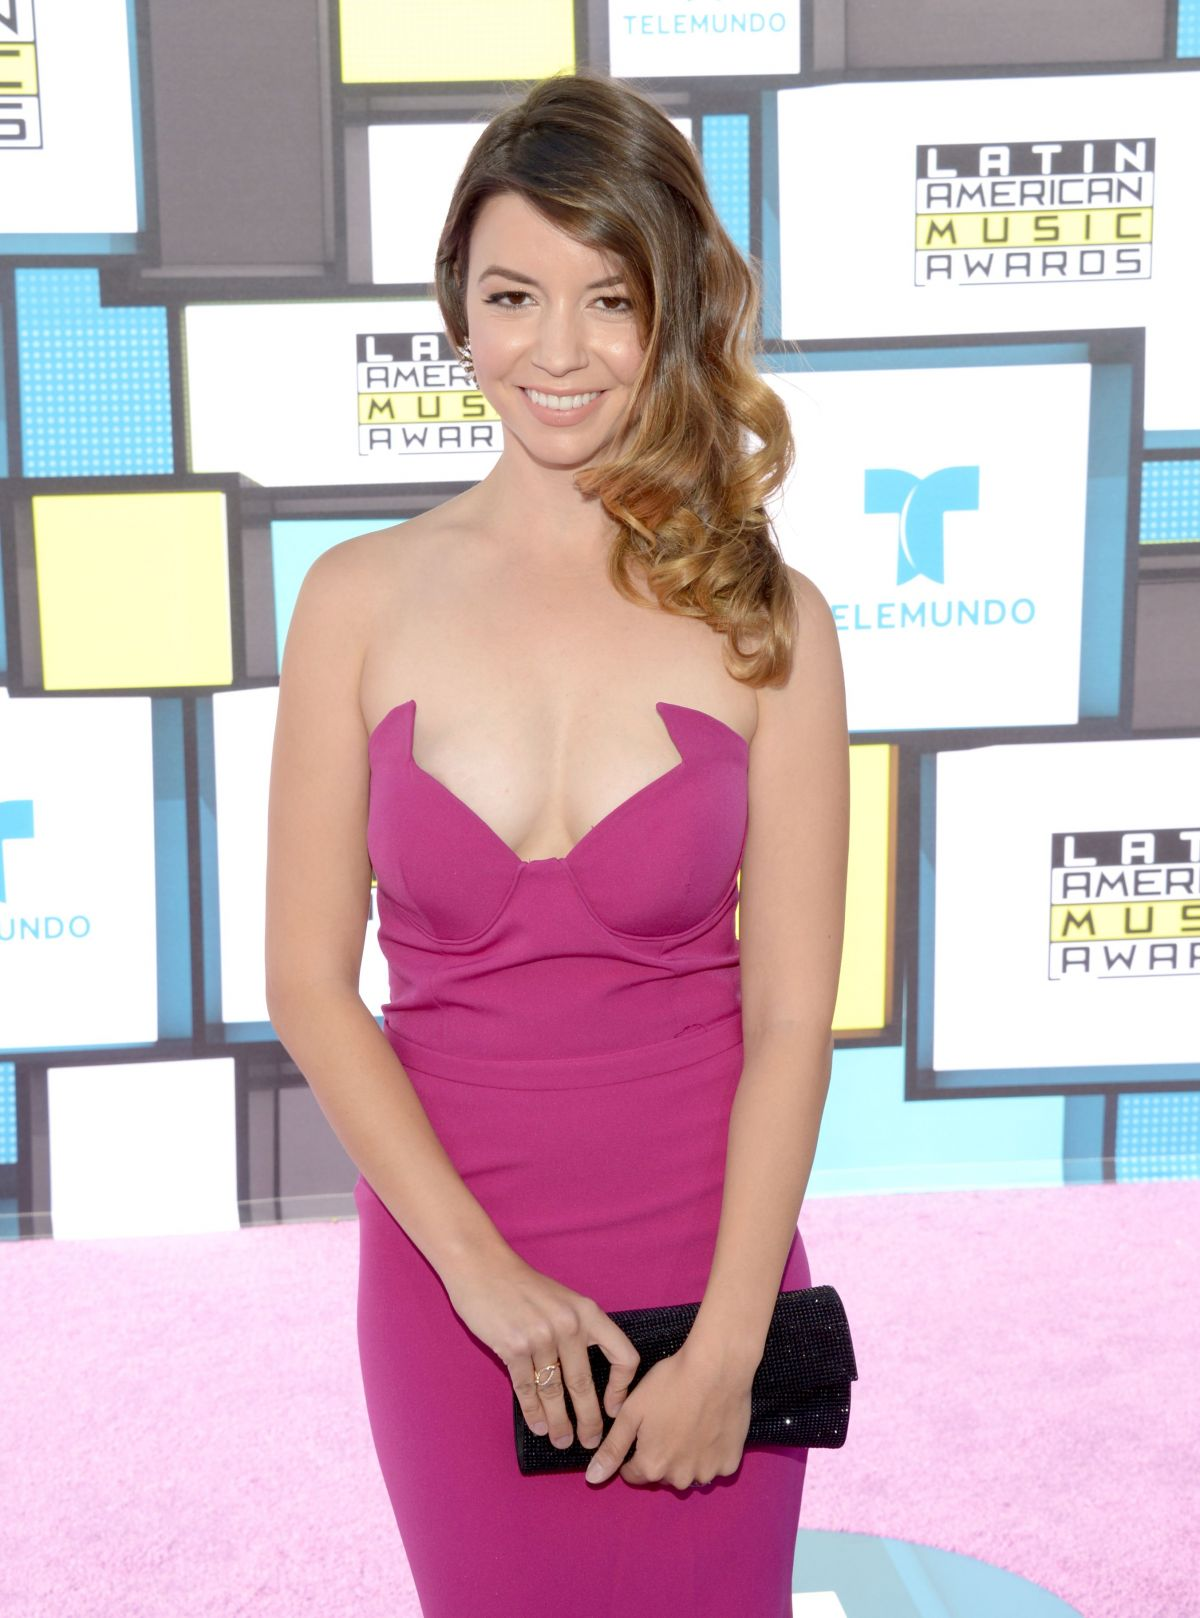 MASIELA LUSHA at 2016 Latin American Music Awards in Hollywood 10/06/2016